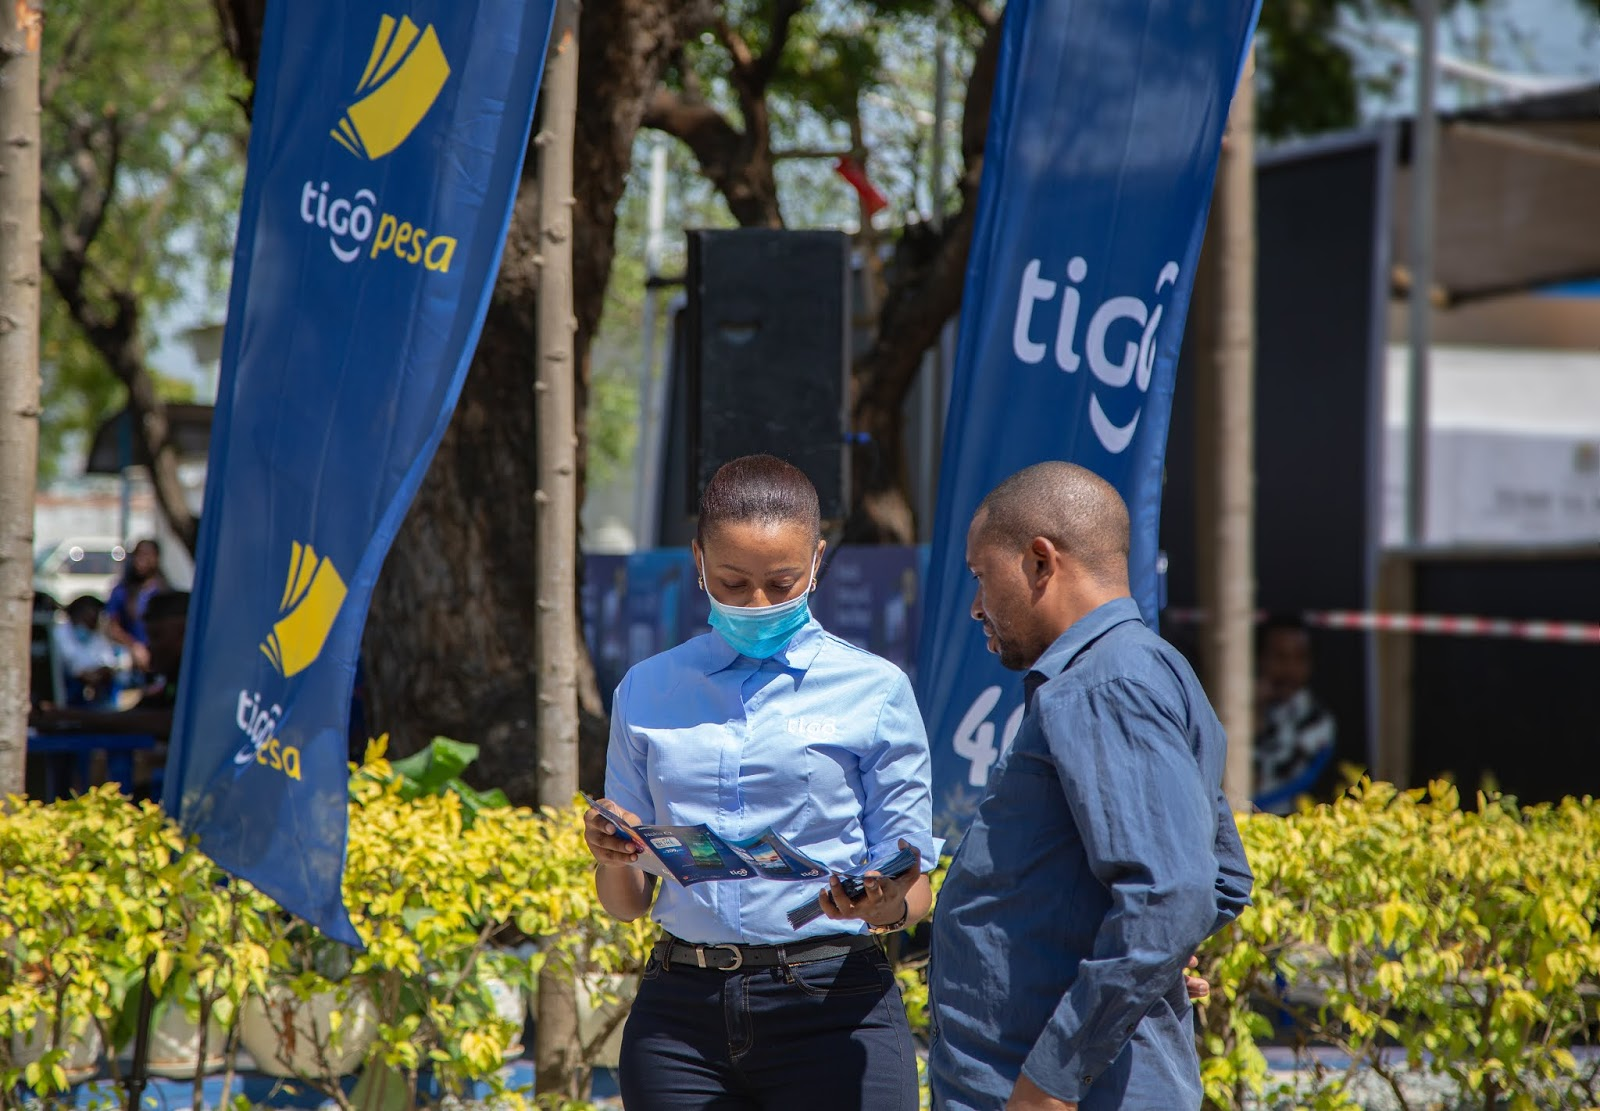 Tigo sponsors DITF fifth year in row